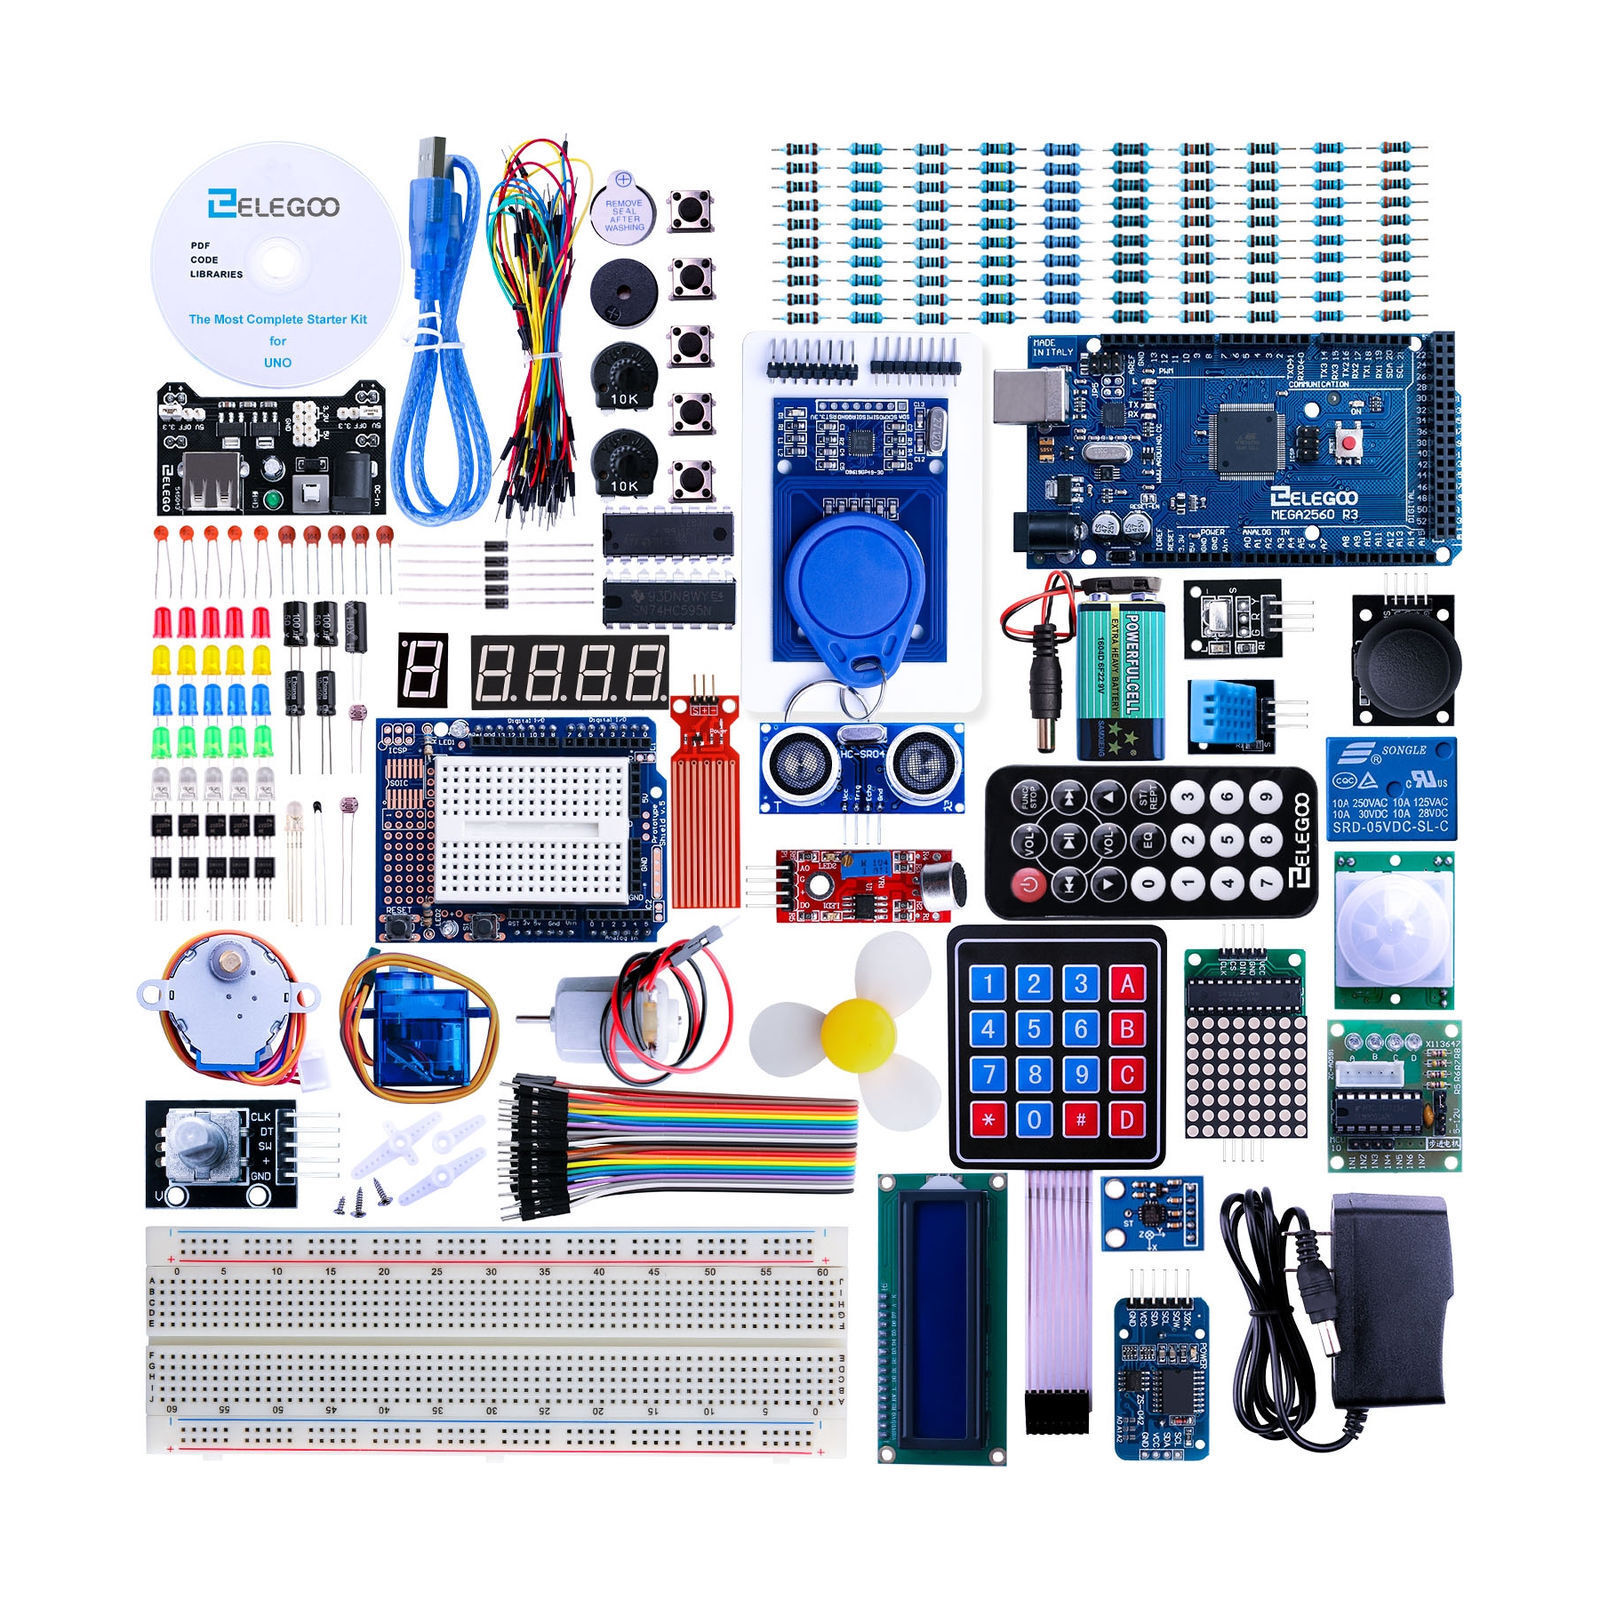 Elegoo Mega 2560 Project The Most Complete Starter Kit El 008 Electronics Circuits Projects Electronic Kits Hobby More Stock Photo